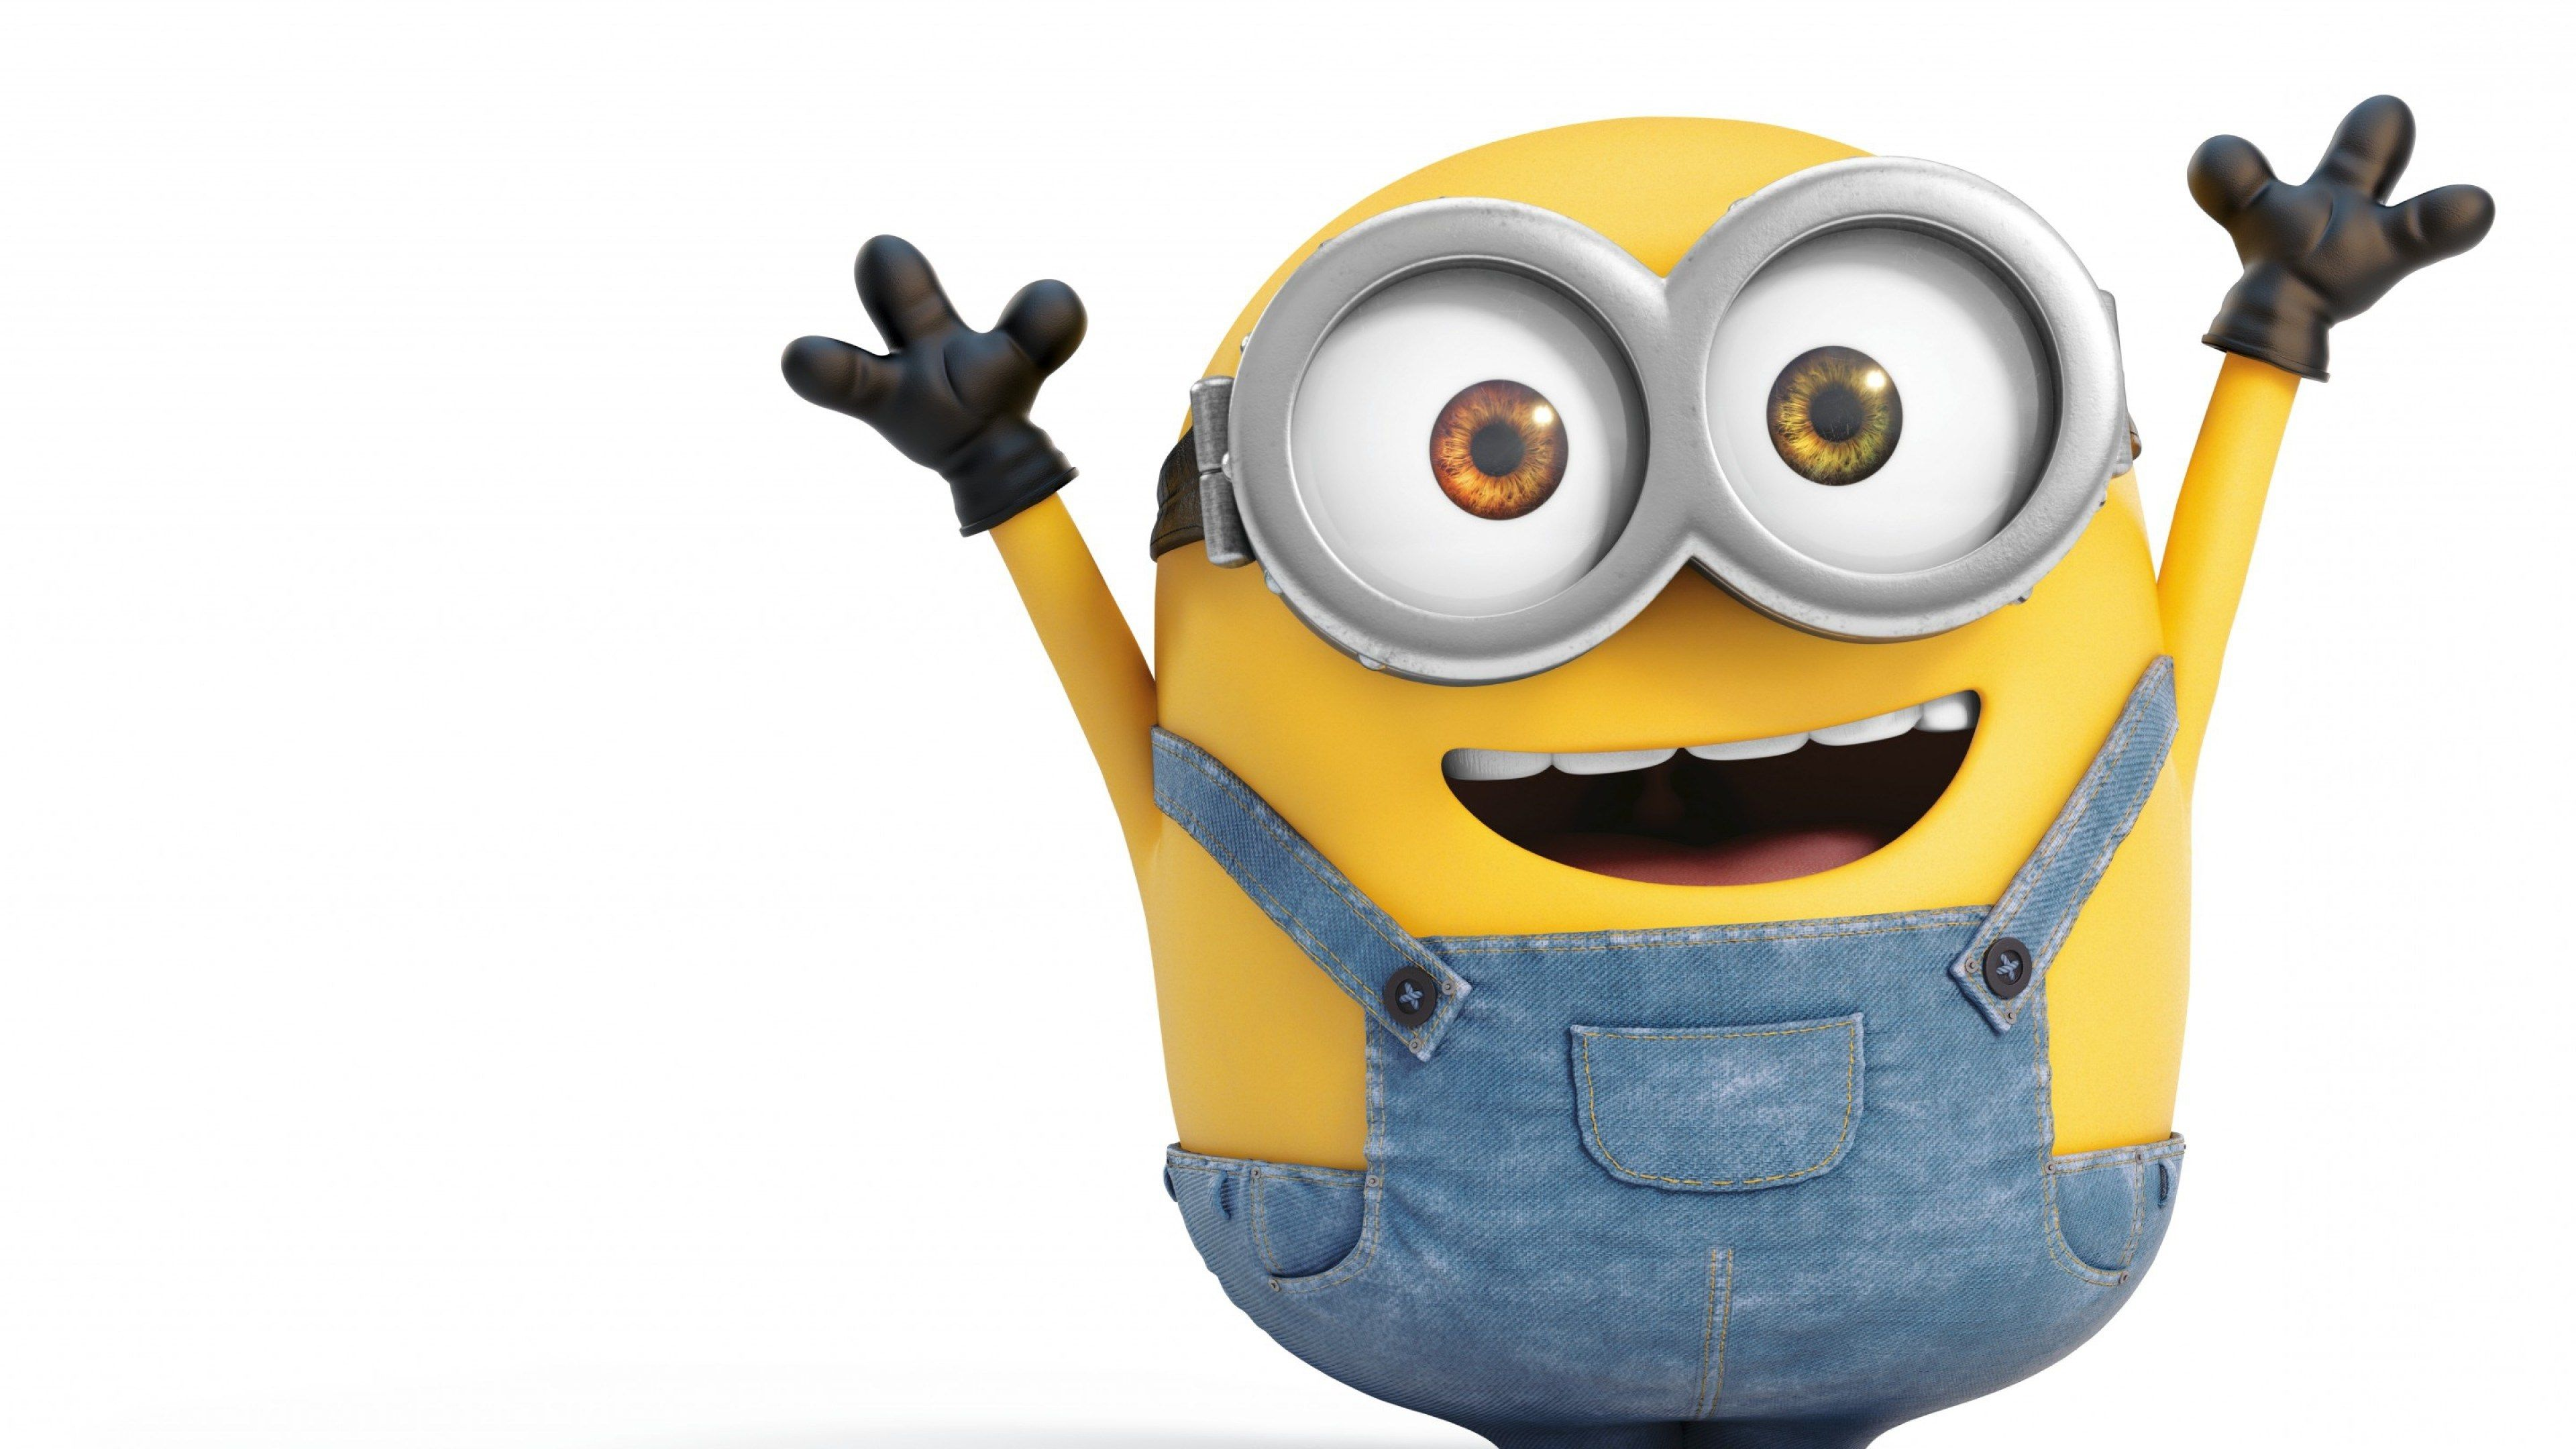 3840x2160 minions 4k free high resolution desktop